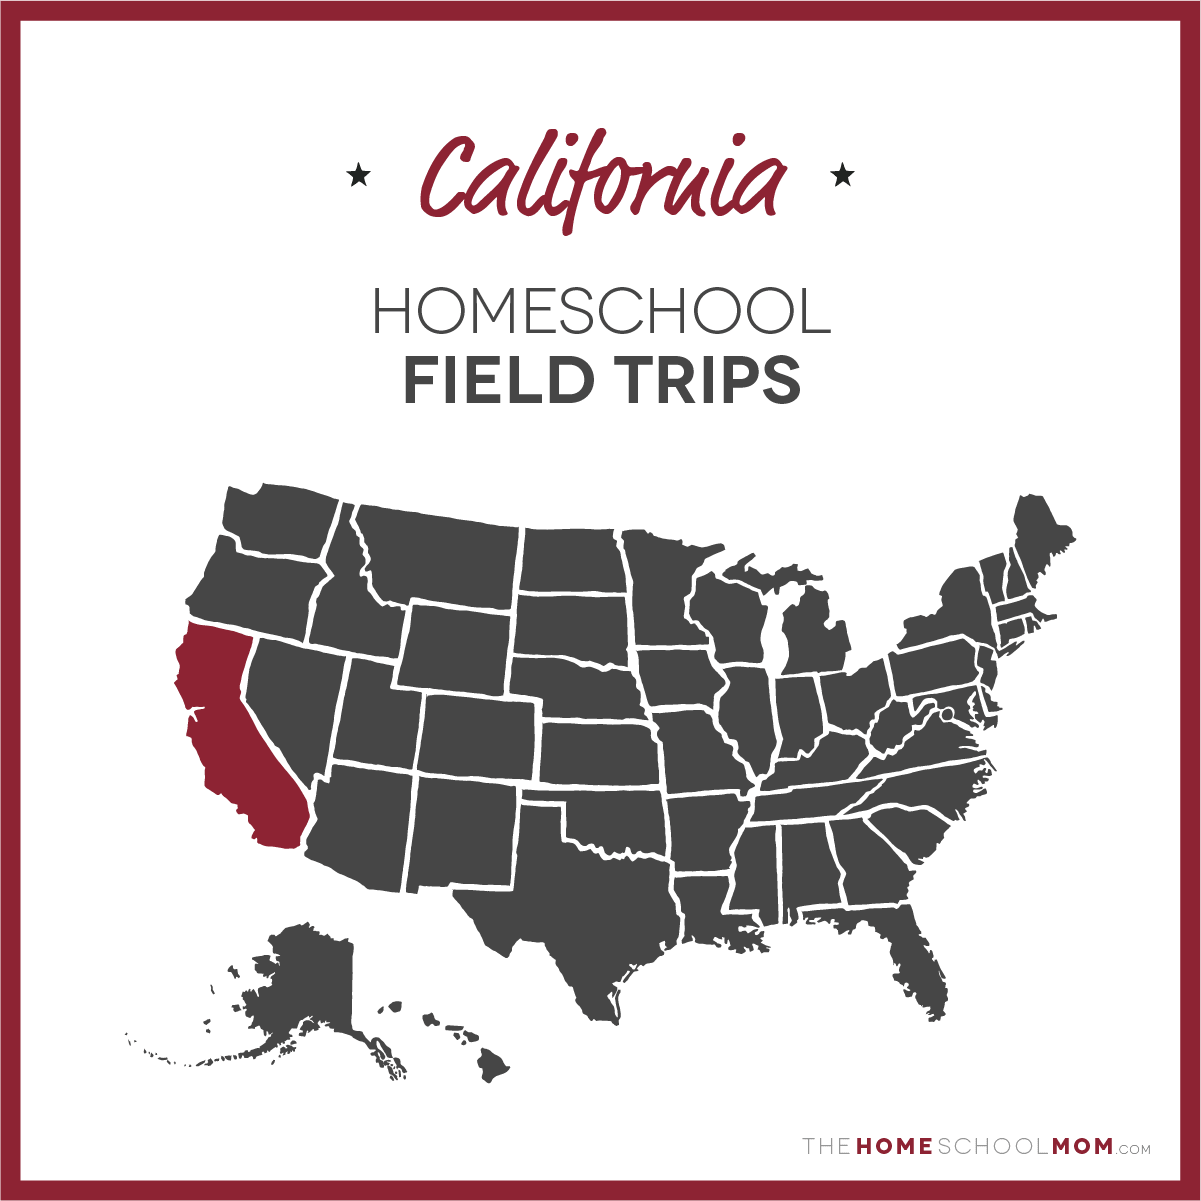 map of the US with California highlighted and text California Homeschool Field Trips